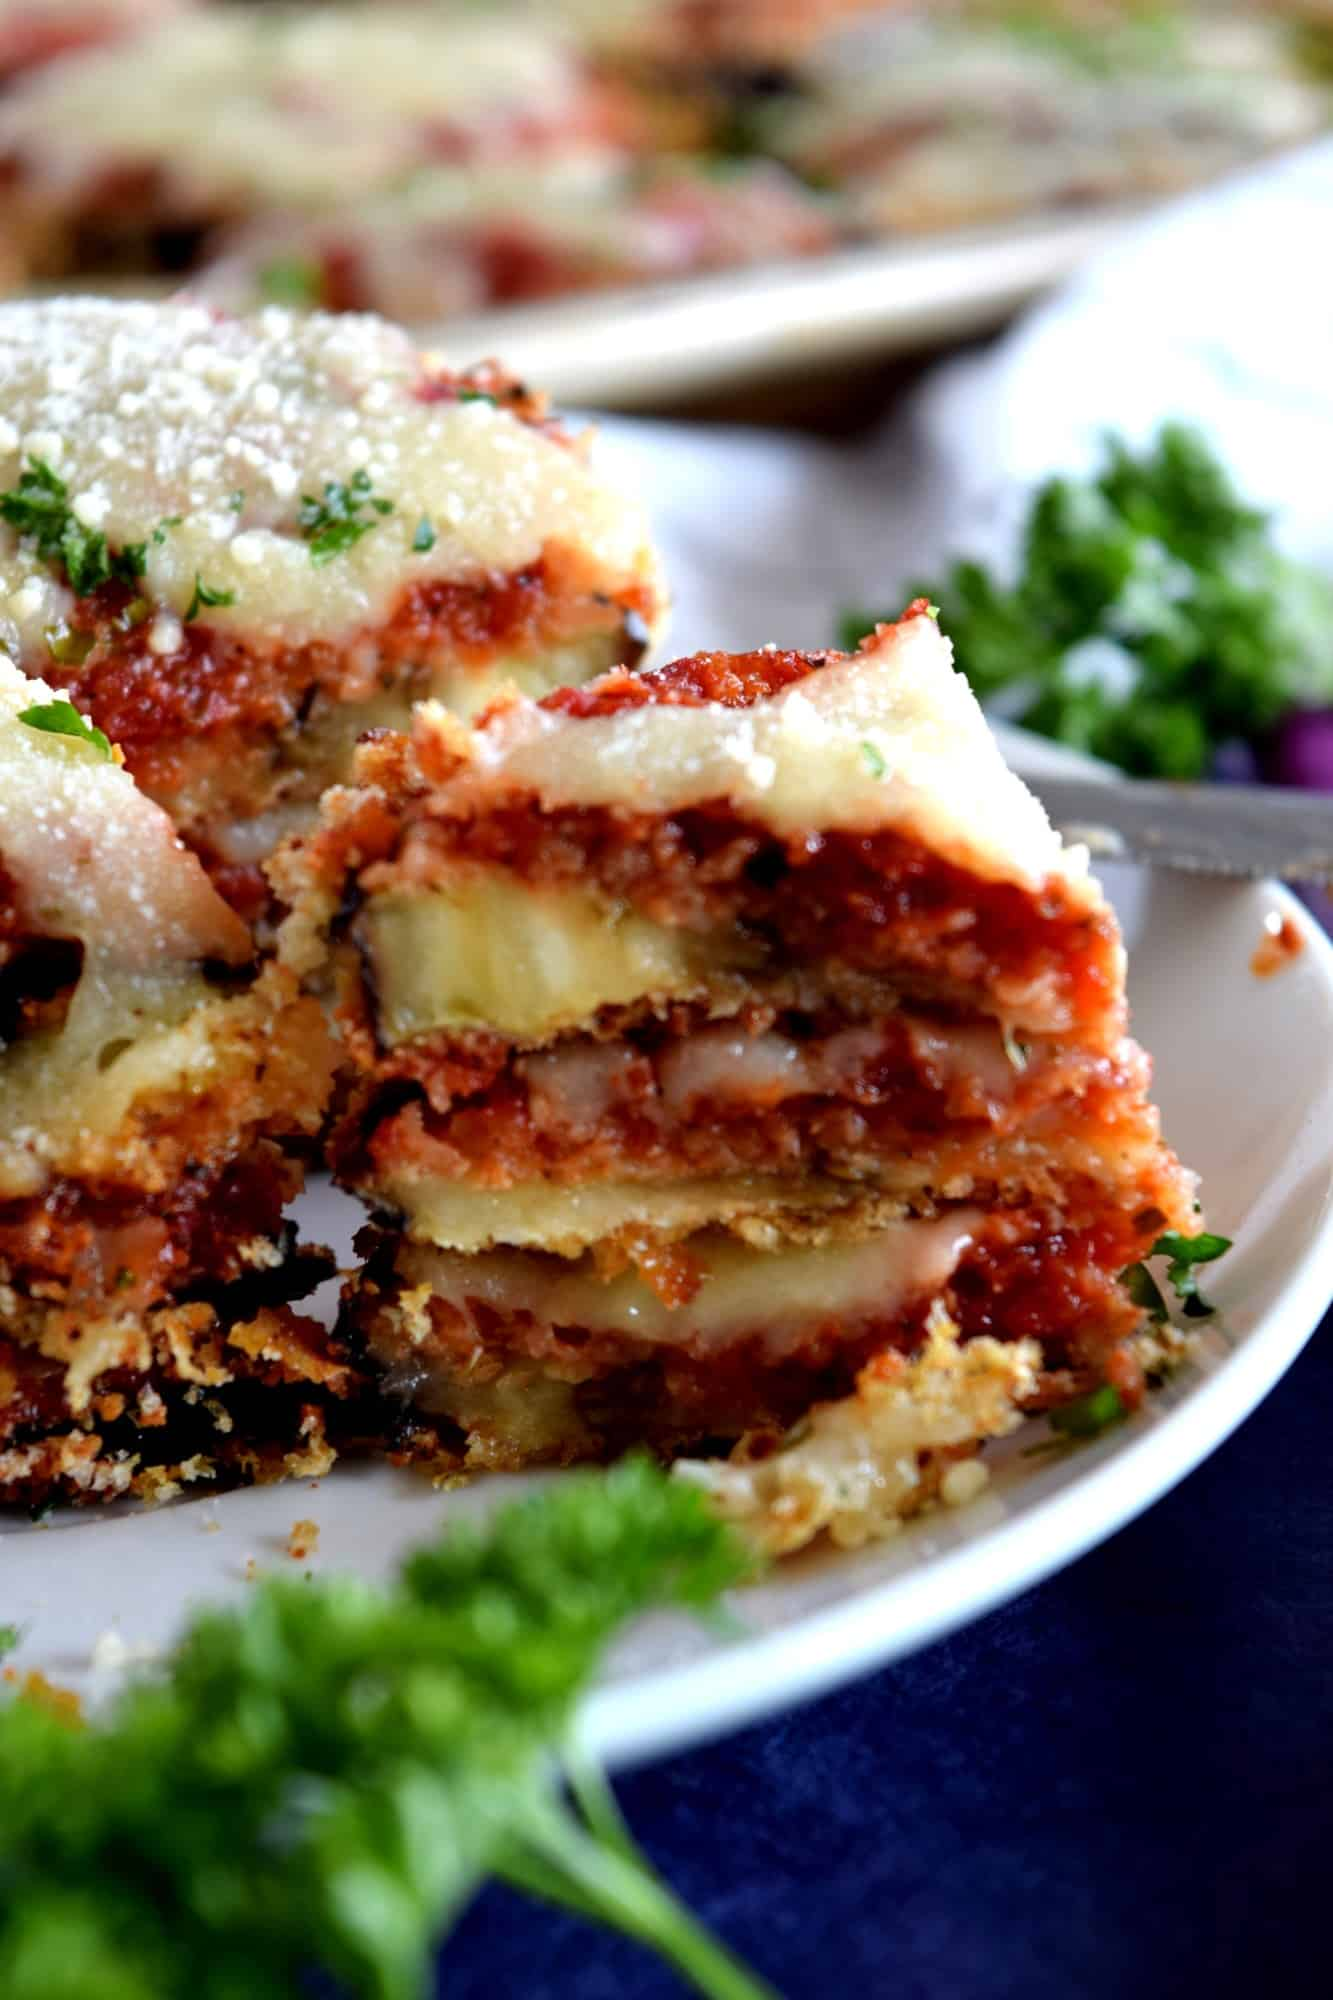 Sheet pan eggplant parmesan lord byrons kitchen if this recipe is your first exposure to eggplant parmesan let me be the first to tell you that you are in for a very tasty treat forumfinder Gallery